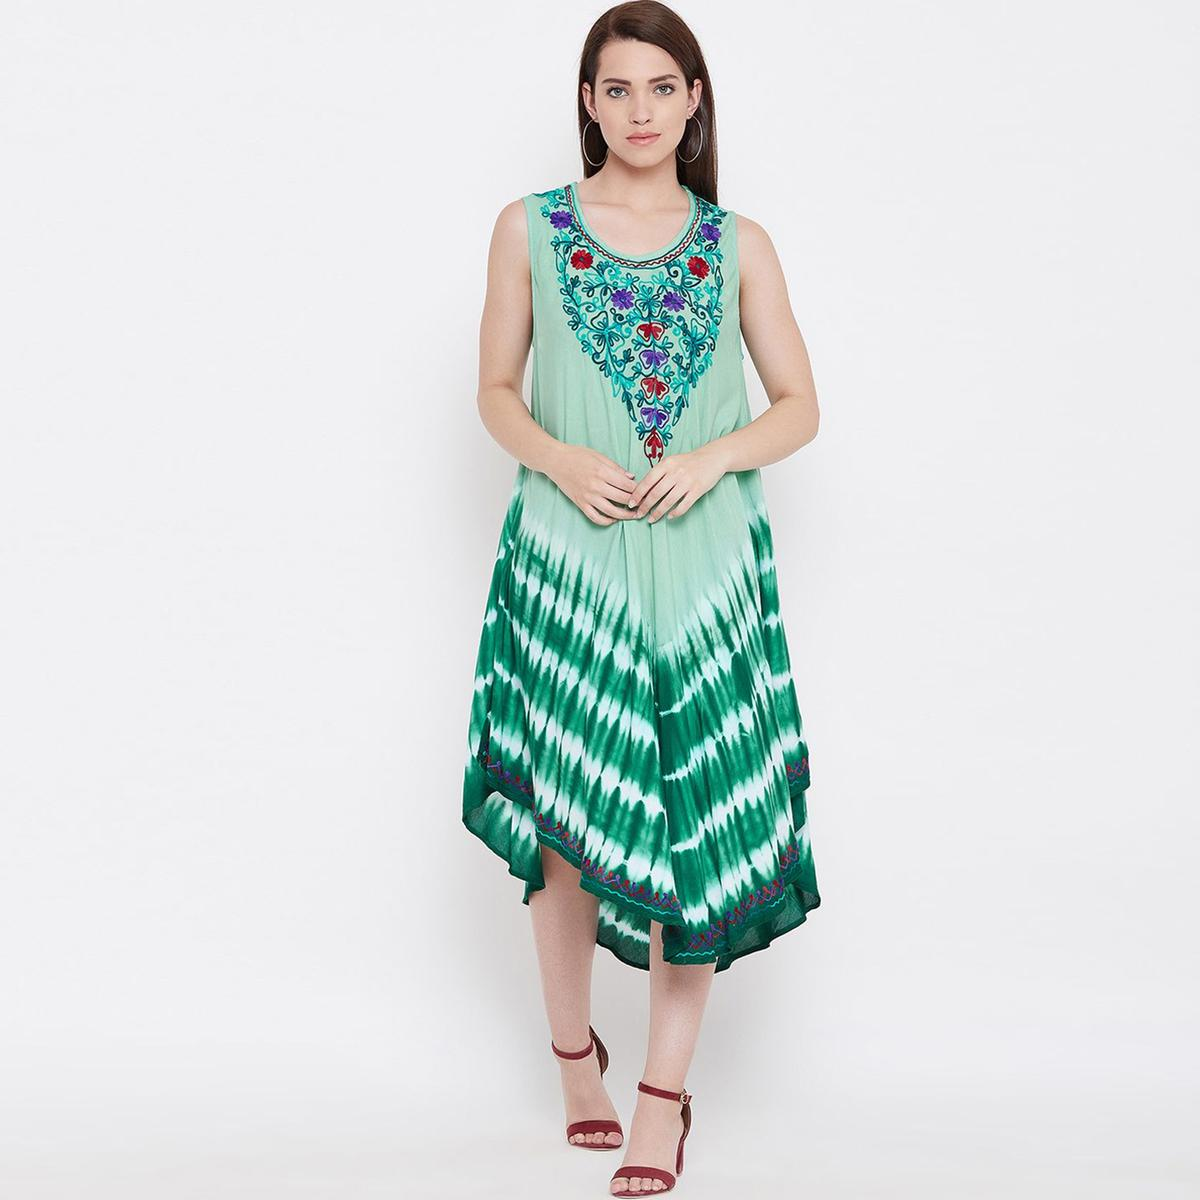 Desirable Green Colored Casual Wear Floral Embroidered Rayon Dress